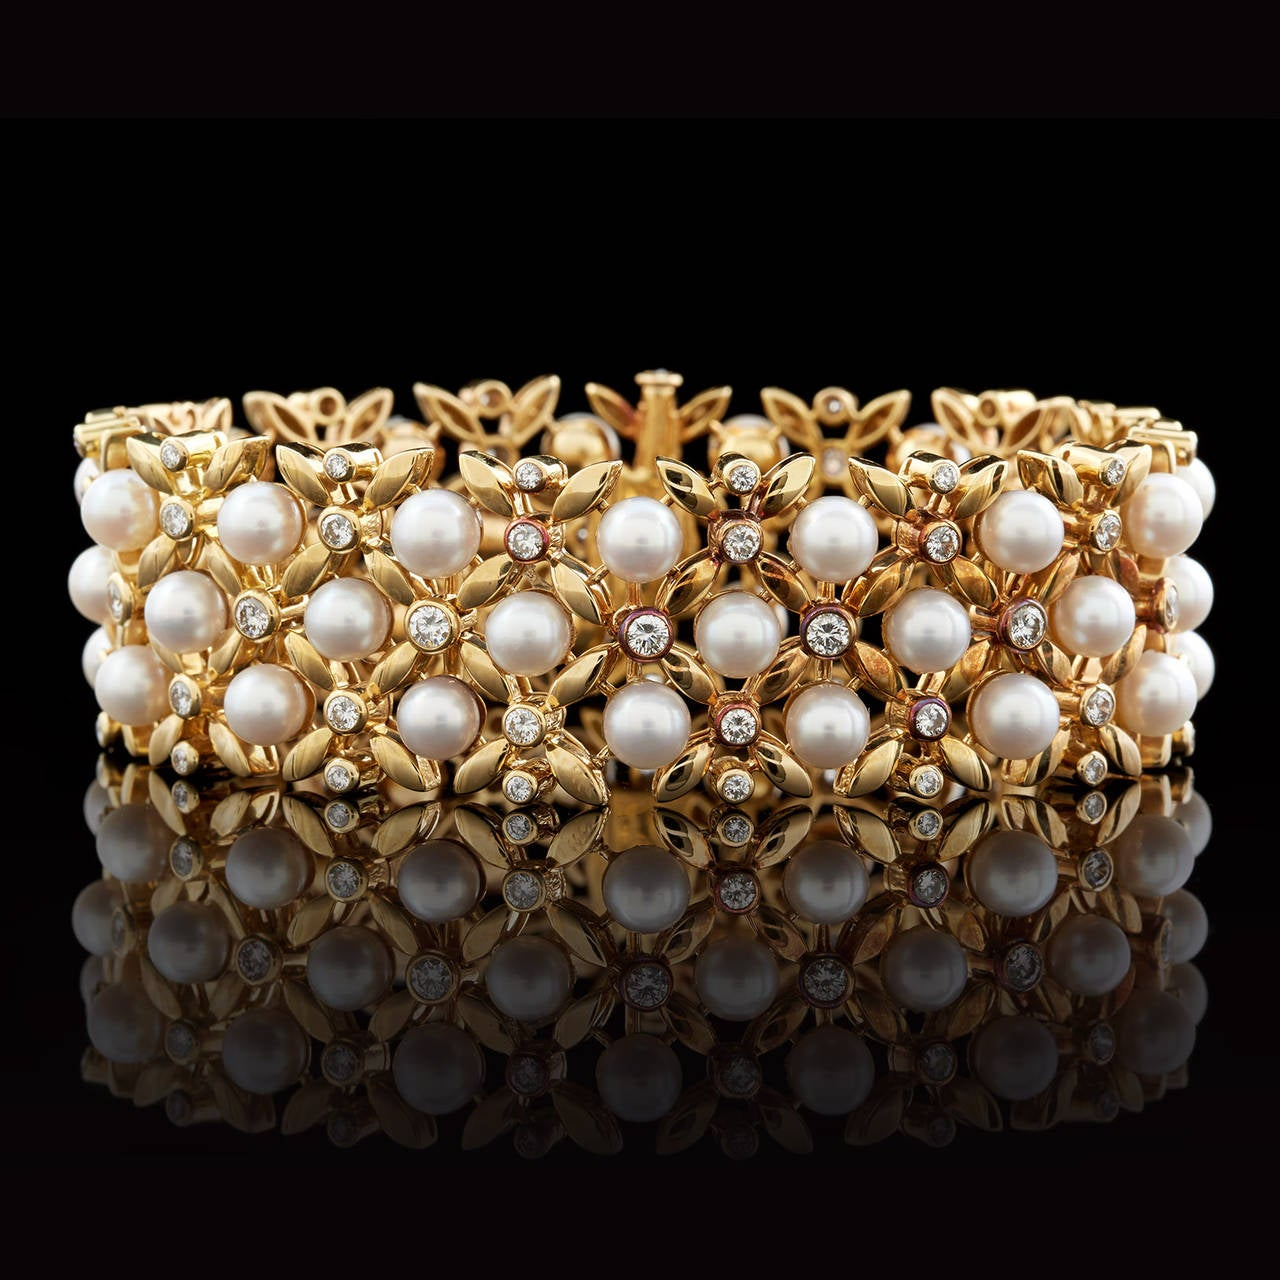 A Fantastic Vintage Tiffany & Co. 18Kt Yellow Gold Bracelet with Floral Links Detailed in 5.5 to 6.0mm Round Cultured Pearls and 75 Round Brilliant Cut Diamonds Totaling Approximately 2.37 Carats. The bracelet measures 7.5 inches long and 0.88